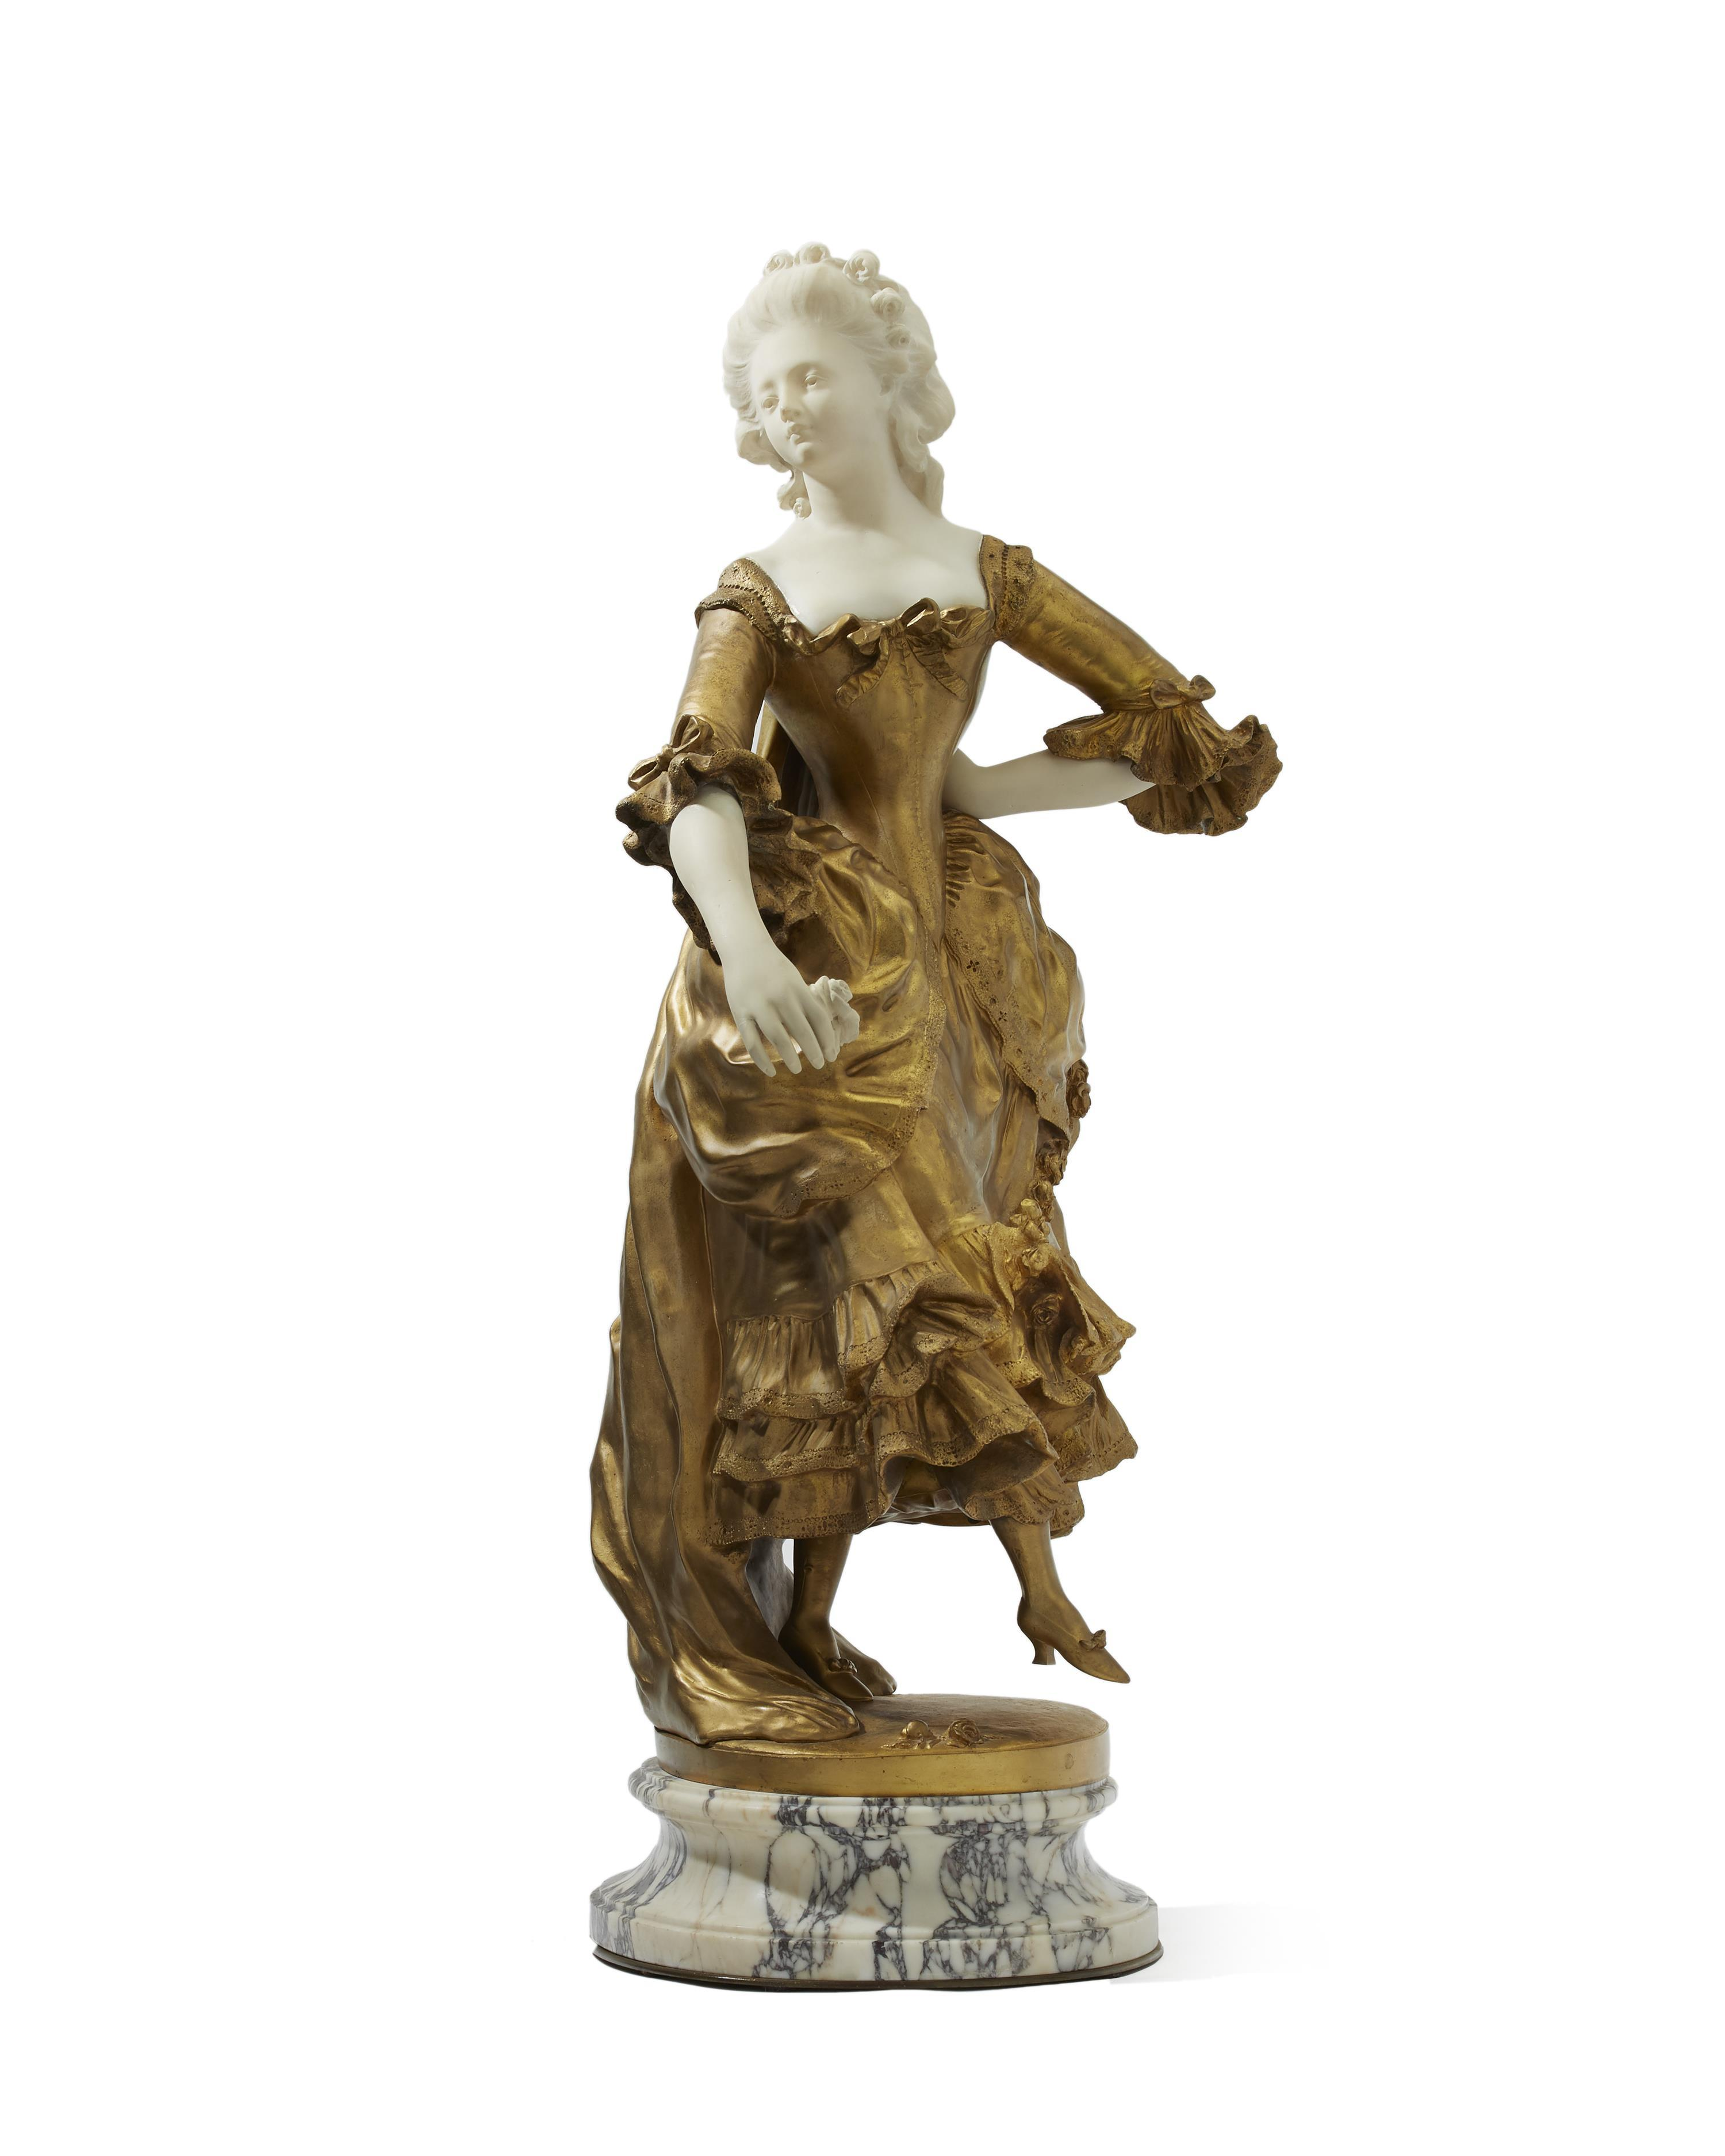 "Affortunato (Fortunato) Gory, (1895-1925 Italian/French), Dancing 18th-century woman, Gilt-bronze and alabaster on marble plinth, 28"" H"